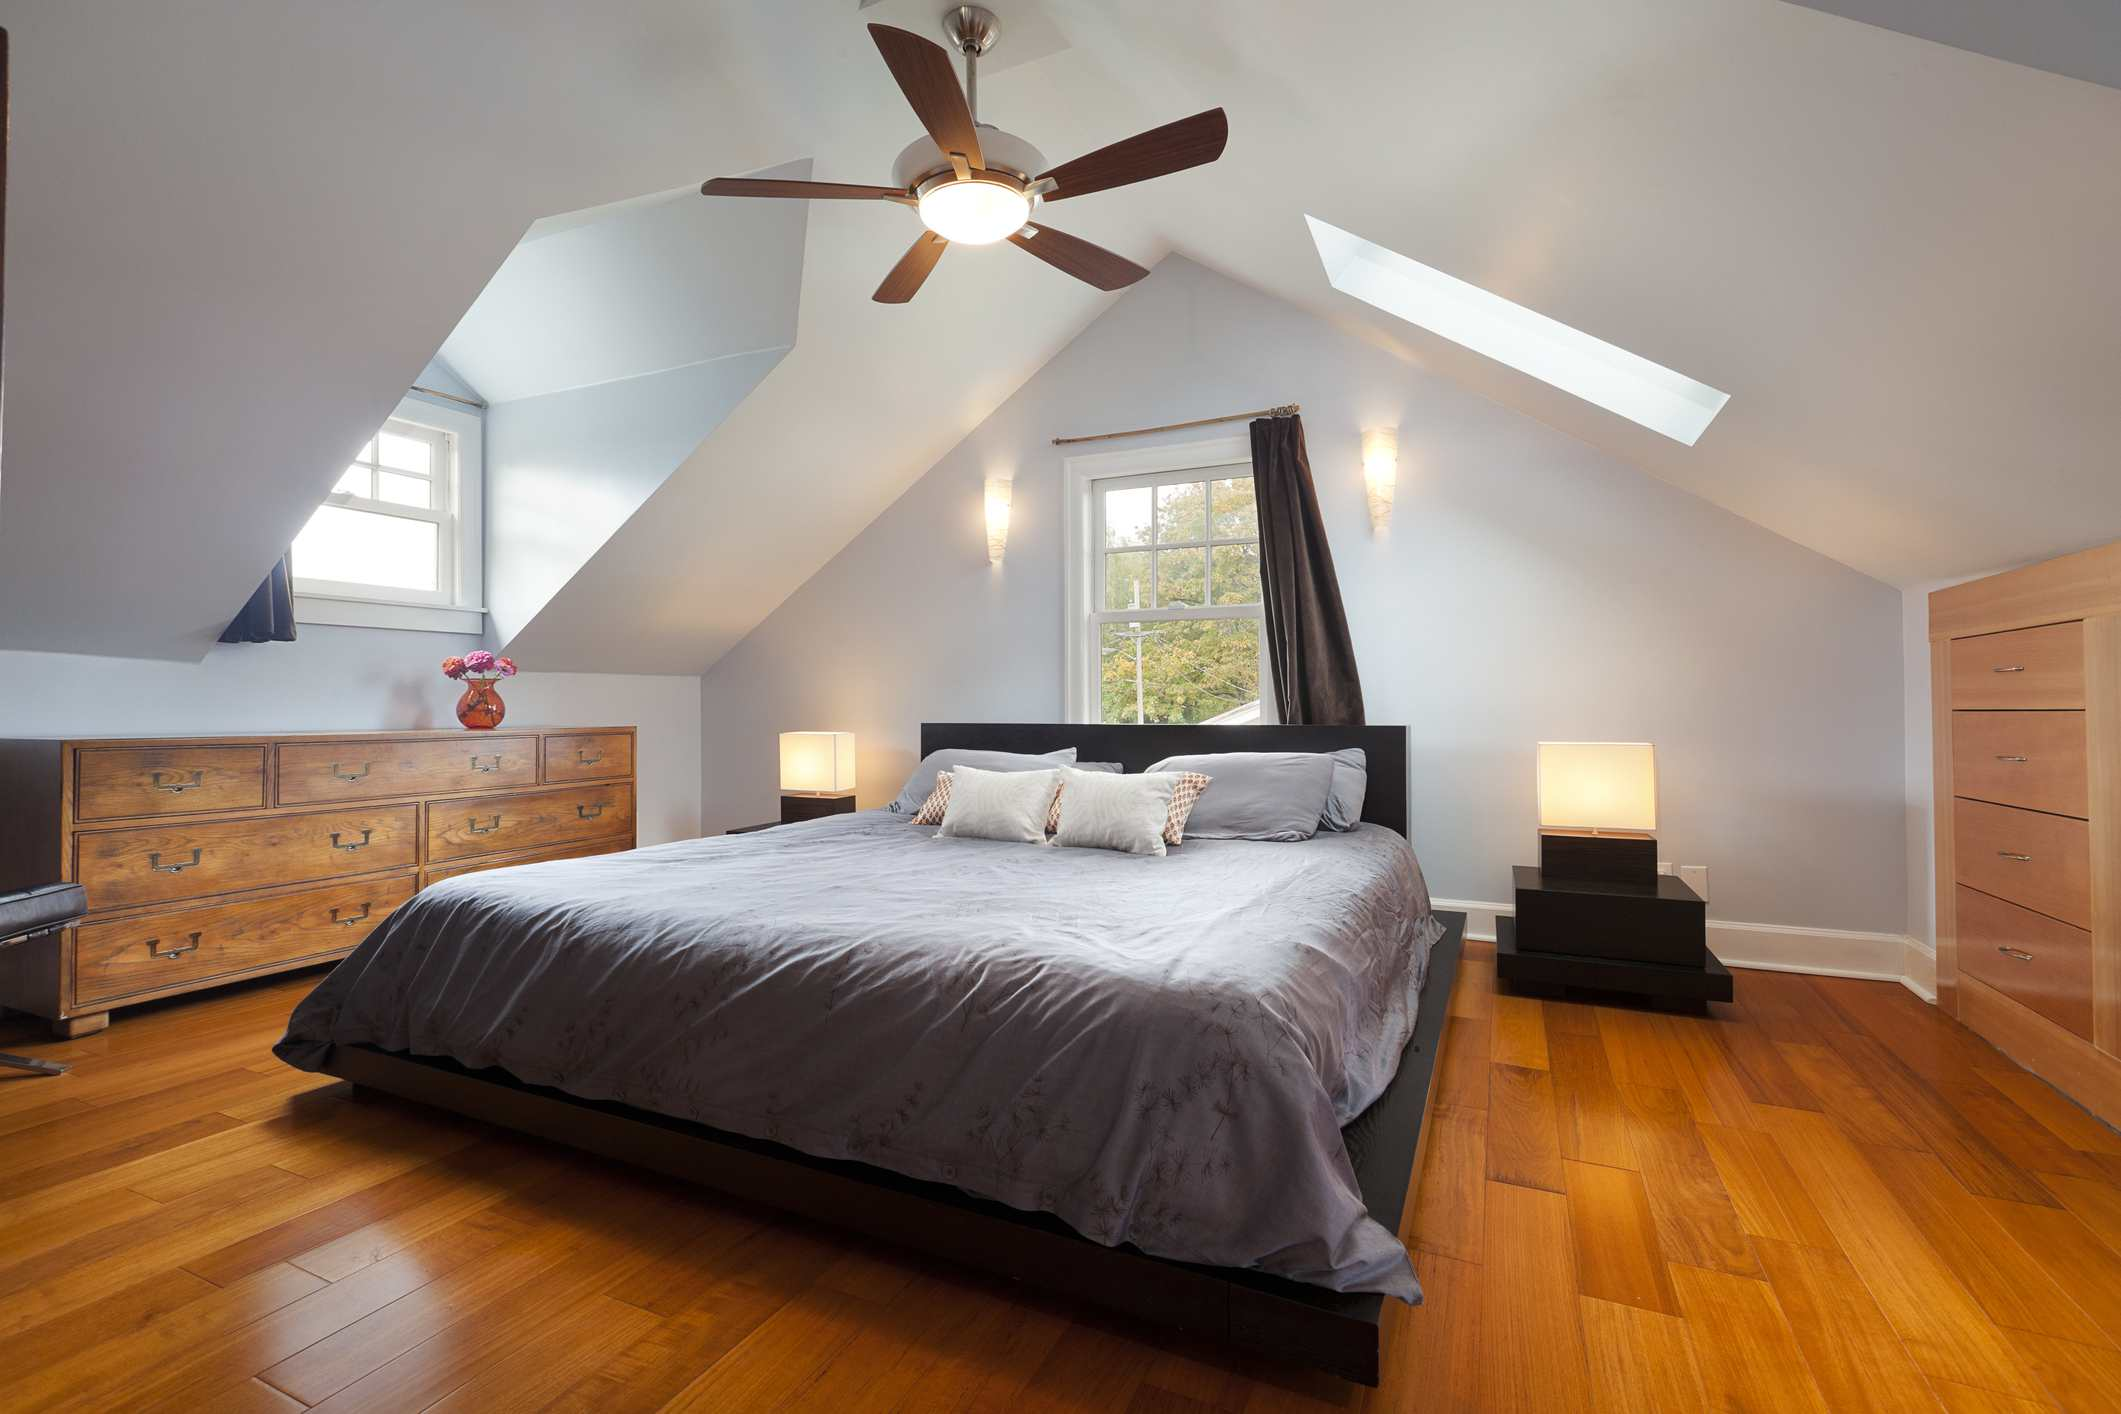 Attic with ceiling fan